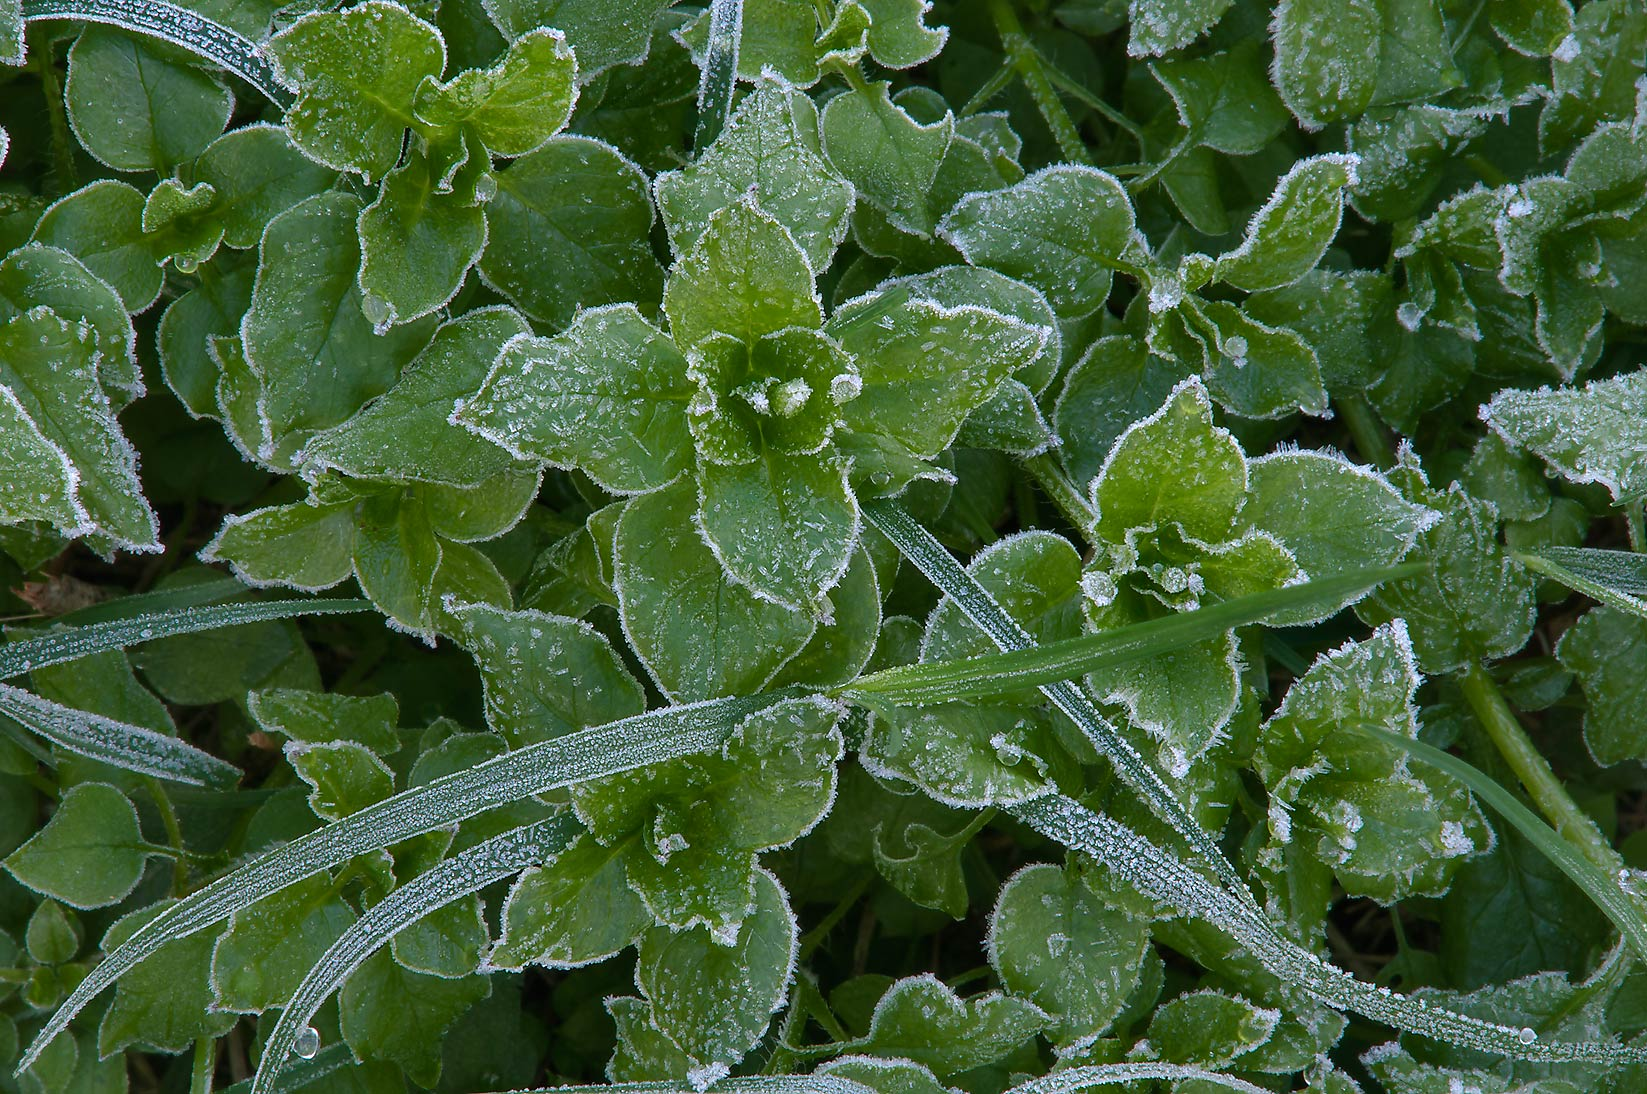 Frozen chickweed (Stellaria) in TAMU...M University. College Station, Texas